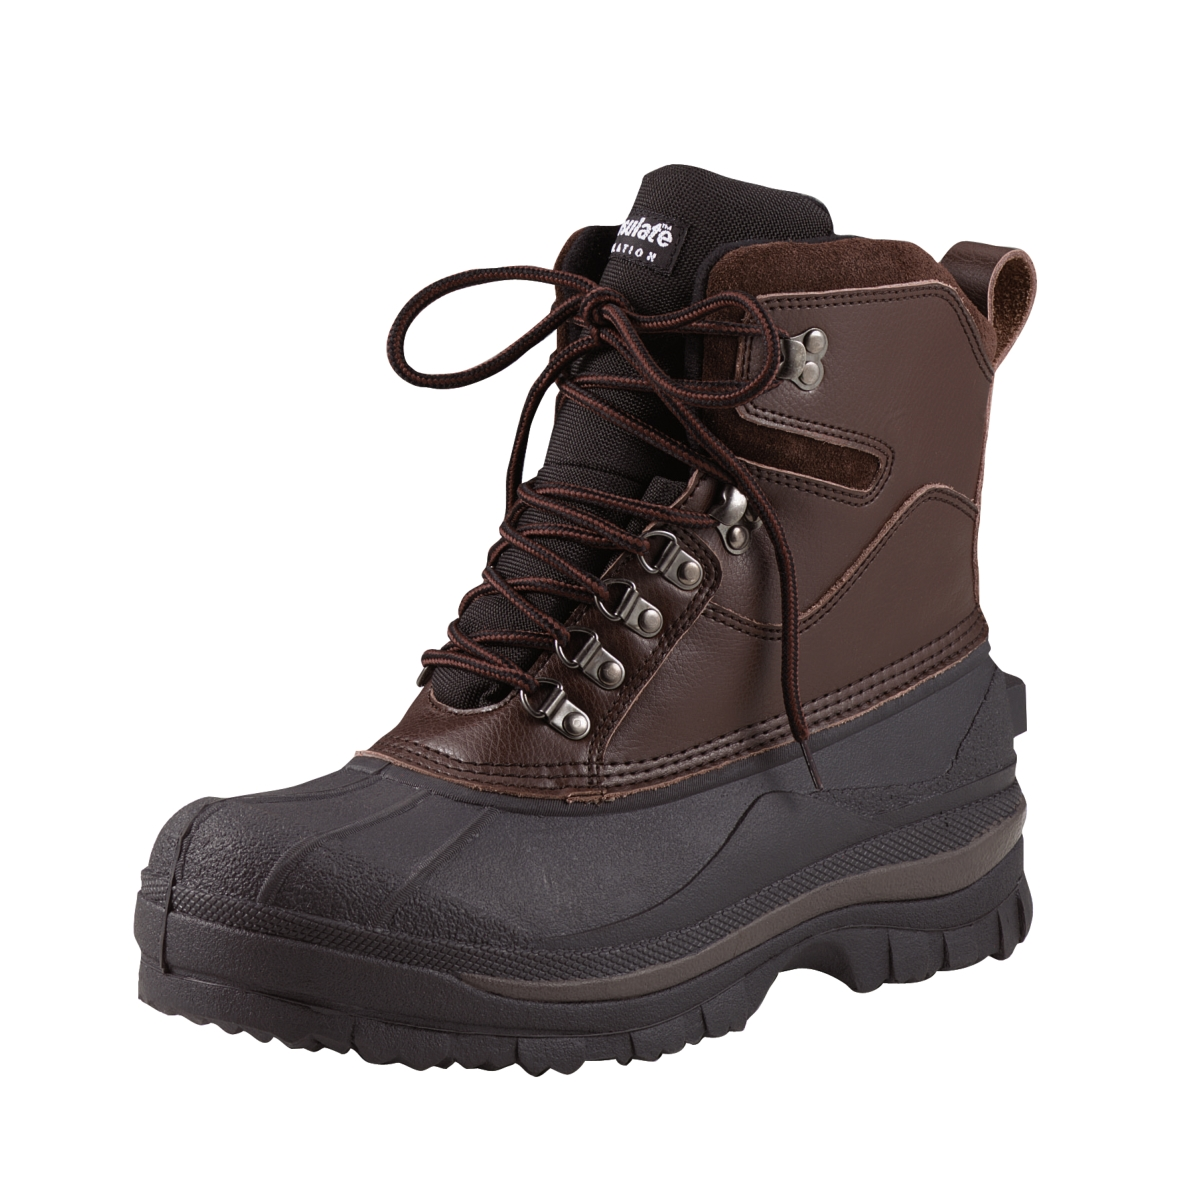 Rothco Thinsulate-lined Cold Weather Winter PAC Boot, Waterproof at Sears.com